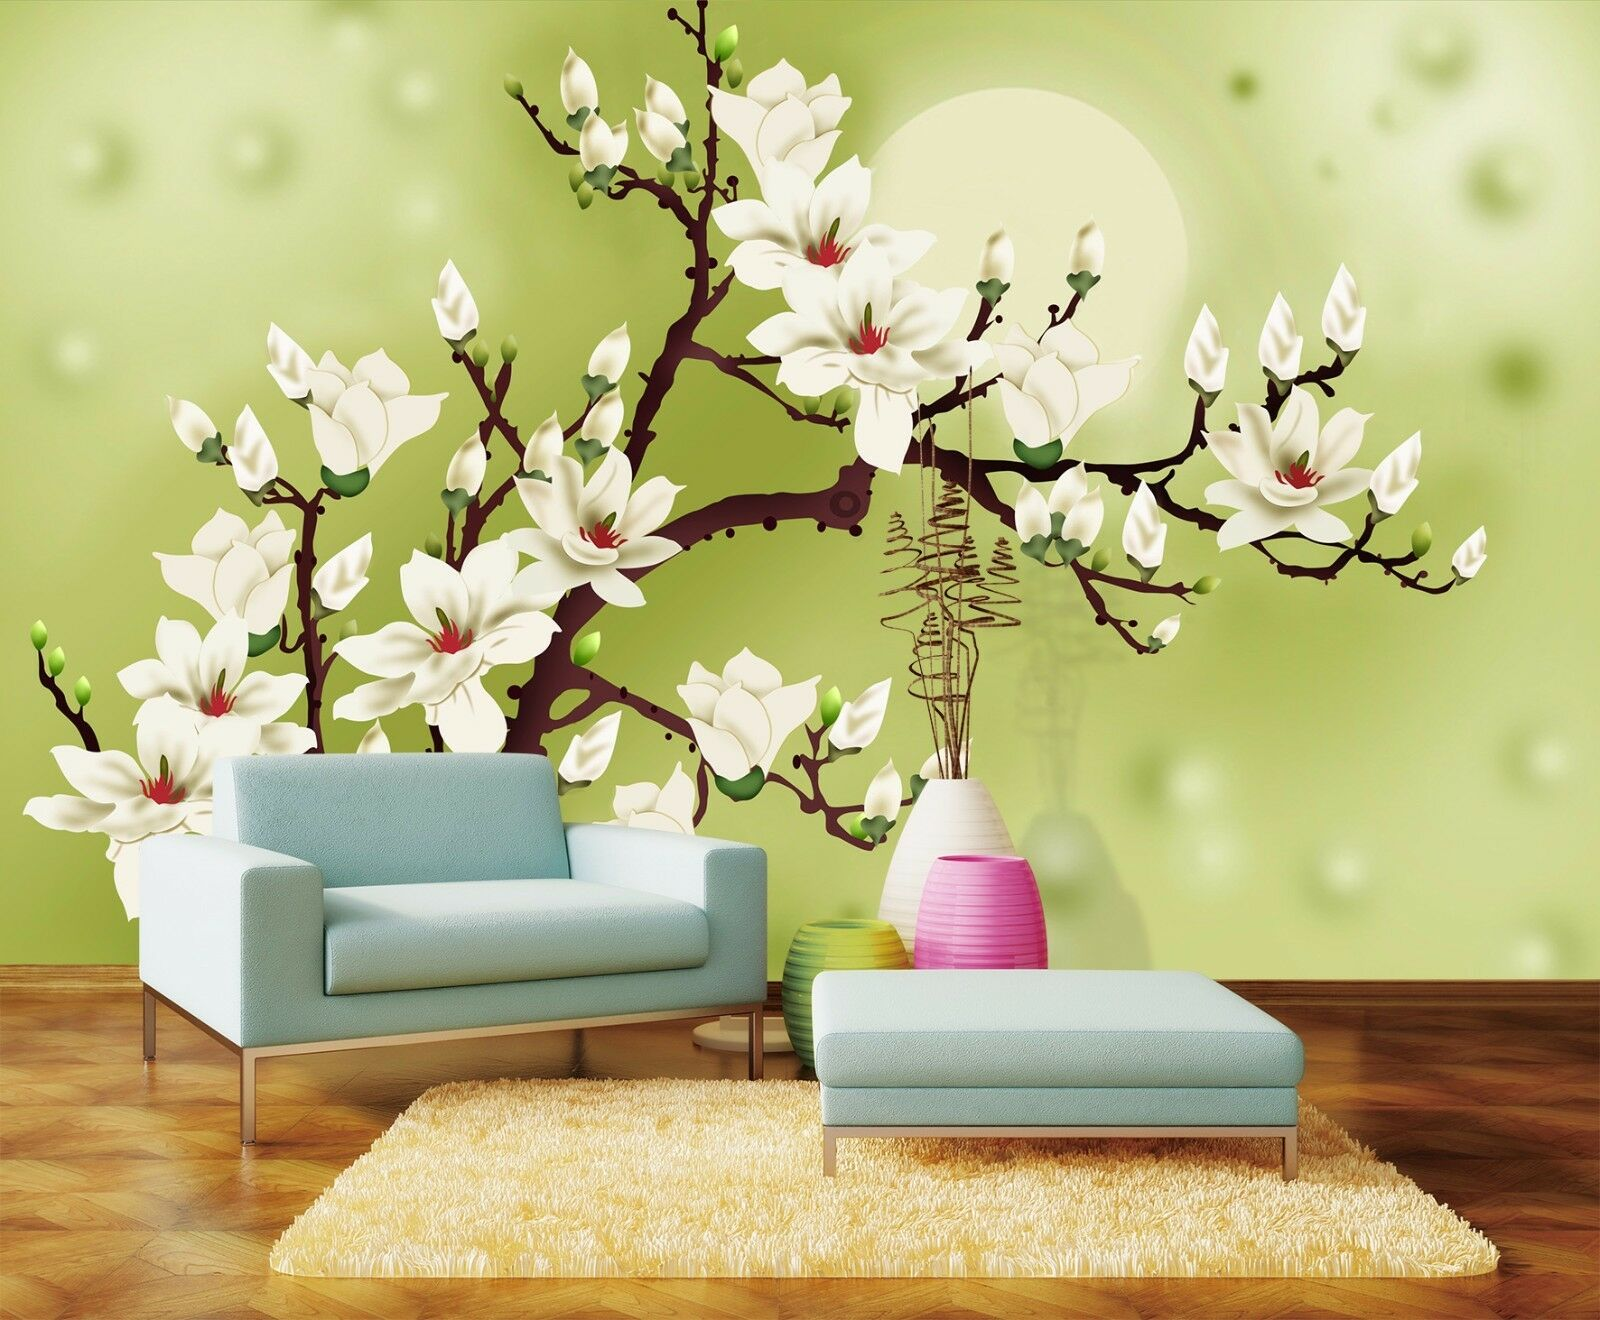 3D Full Moon And Flowers 84 WandPapier Decal Dercor Home Kids Nursery Mural  Home